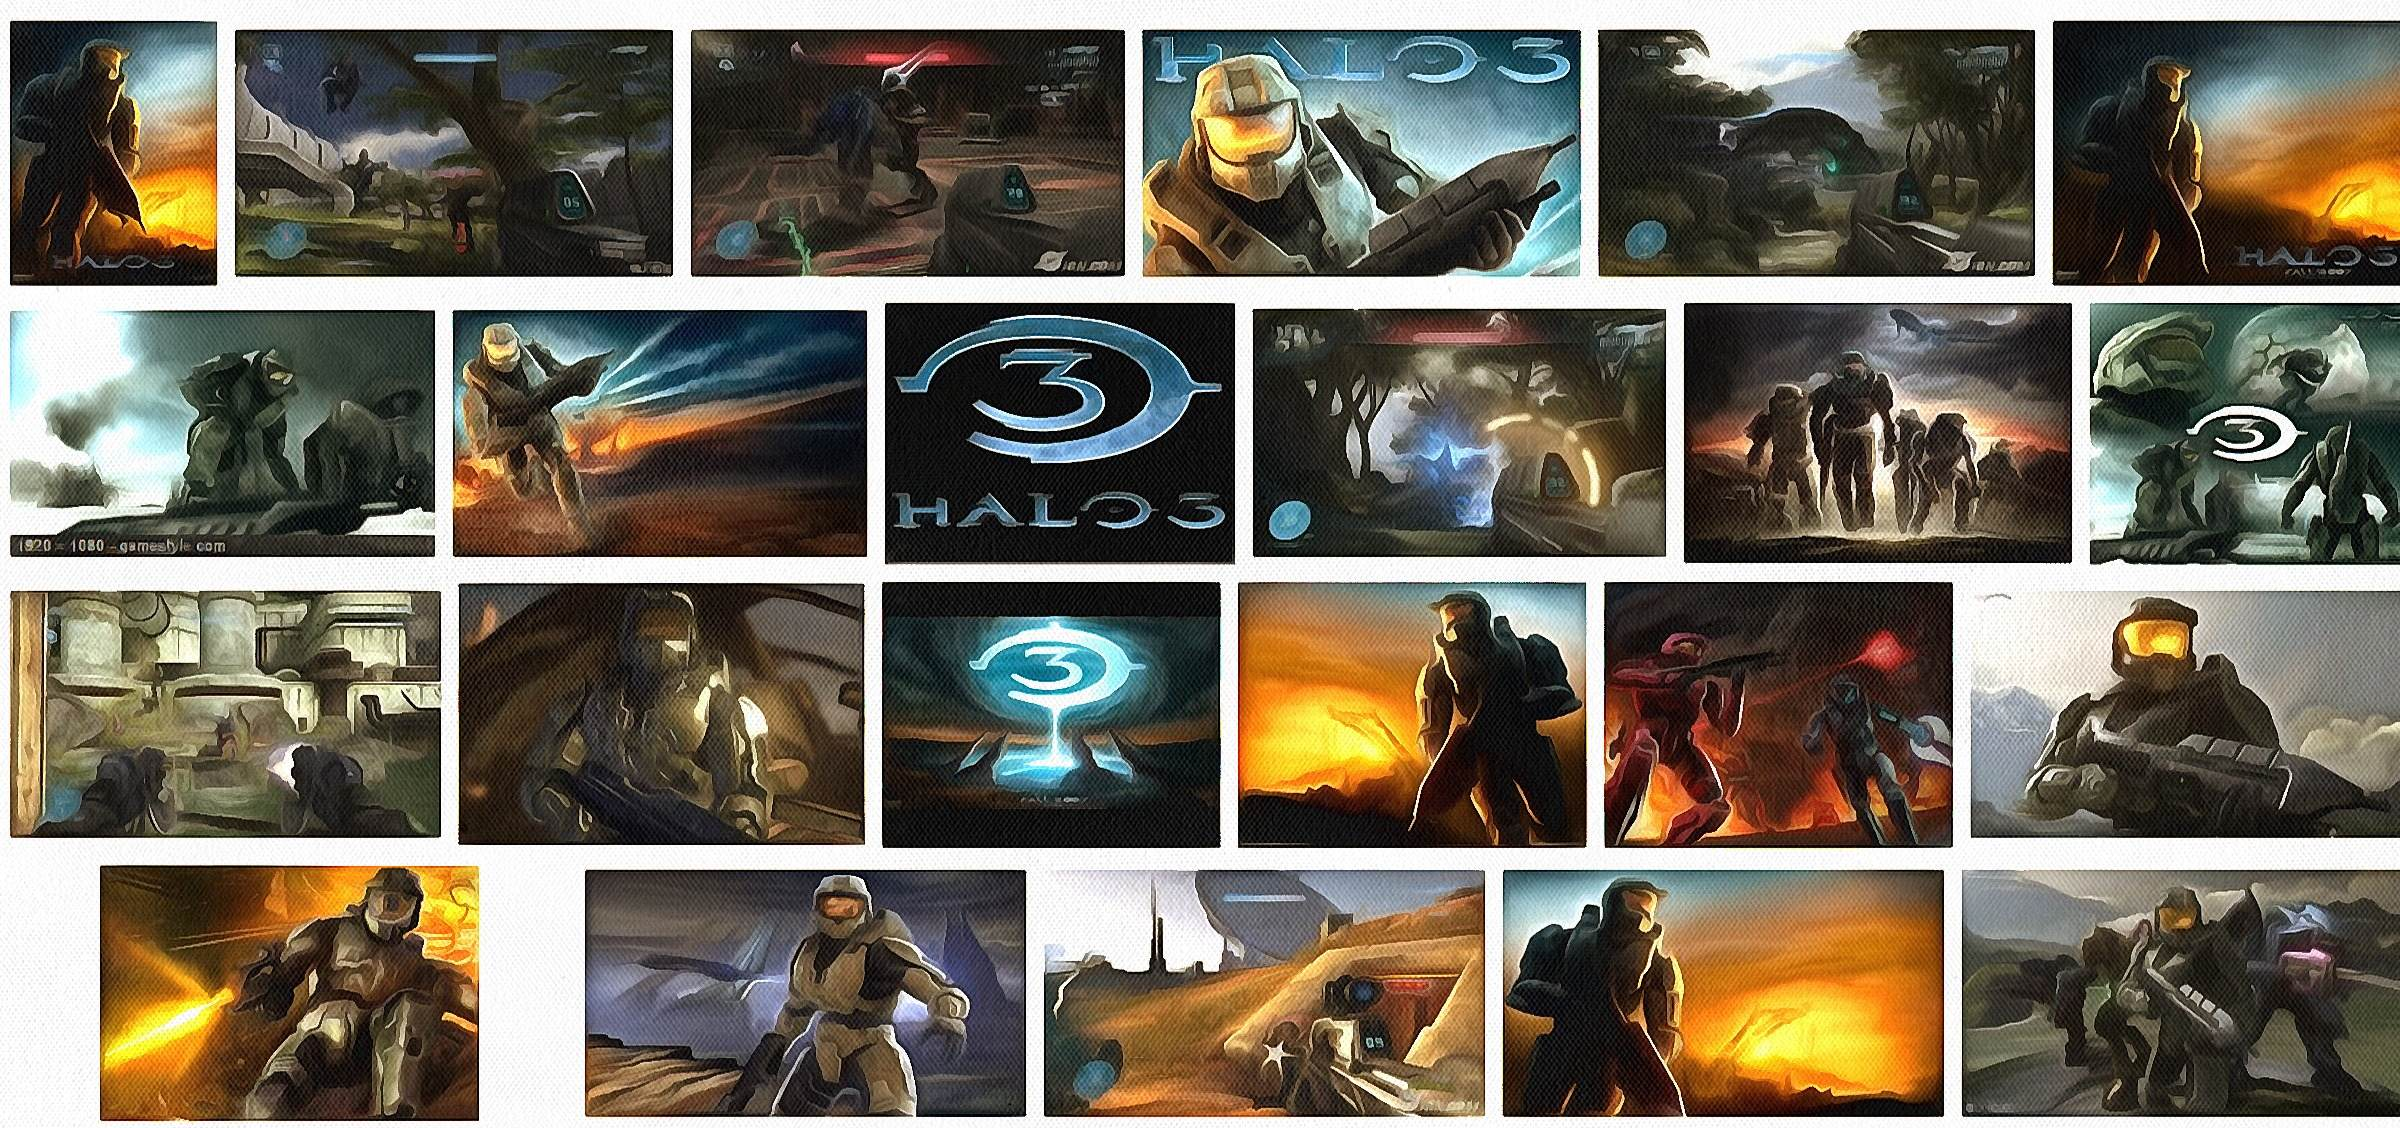 Halo 3 Funny Videos